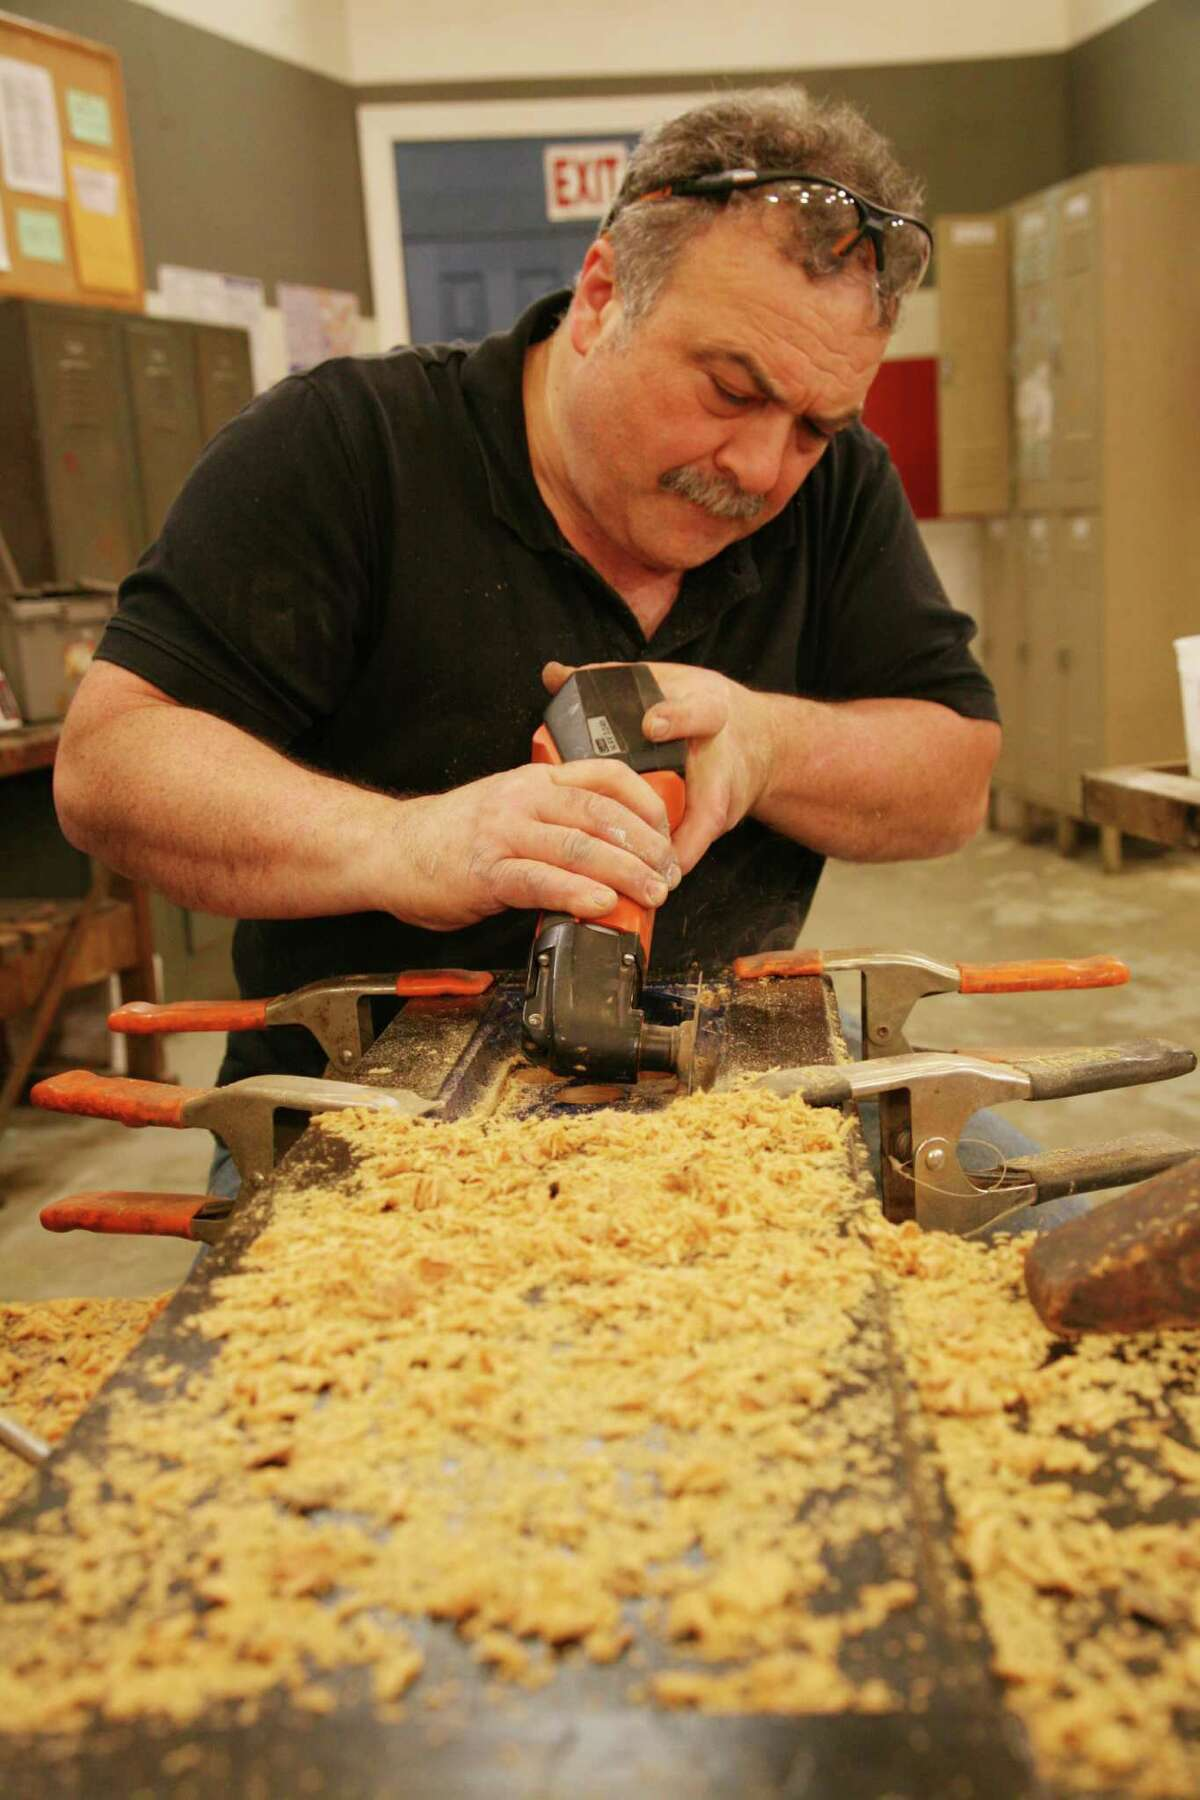 """Mark DeVito, a furniture restorer in Stamford, learned the business from his dad. He is one of the experts who helps contestants refurbish vintage furniture pieces on """"Flea Market Flip."""""""